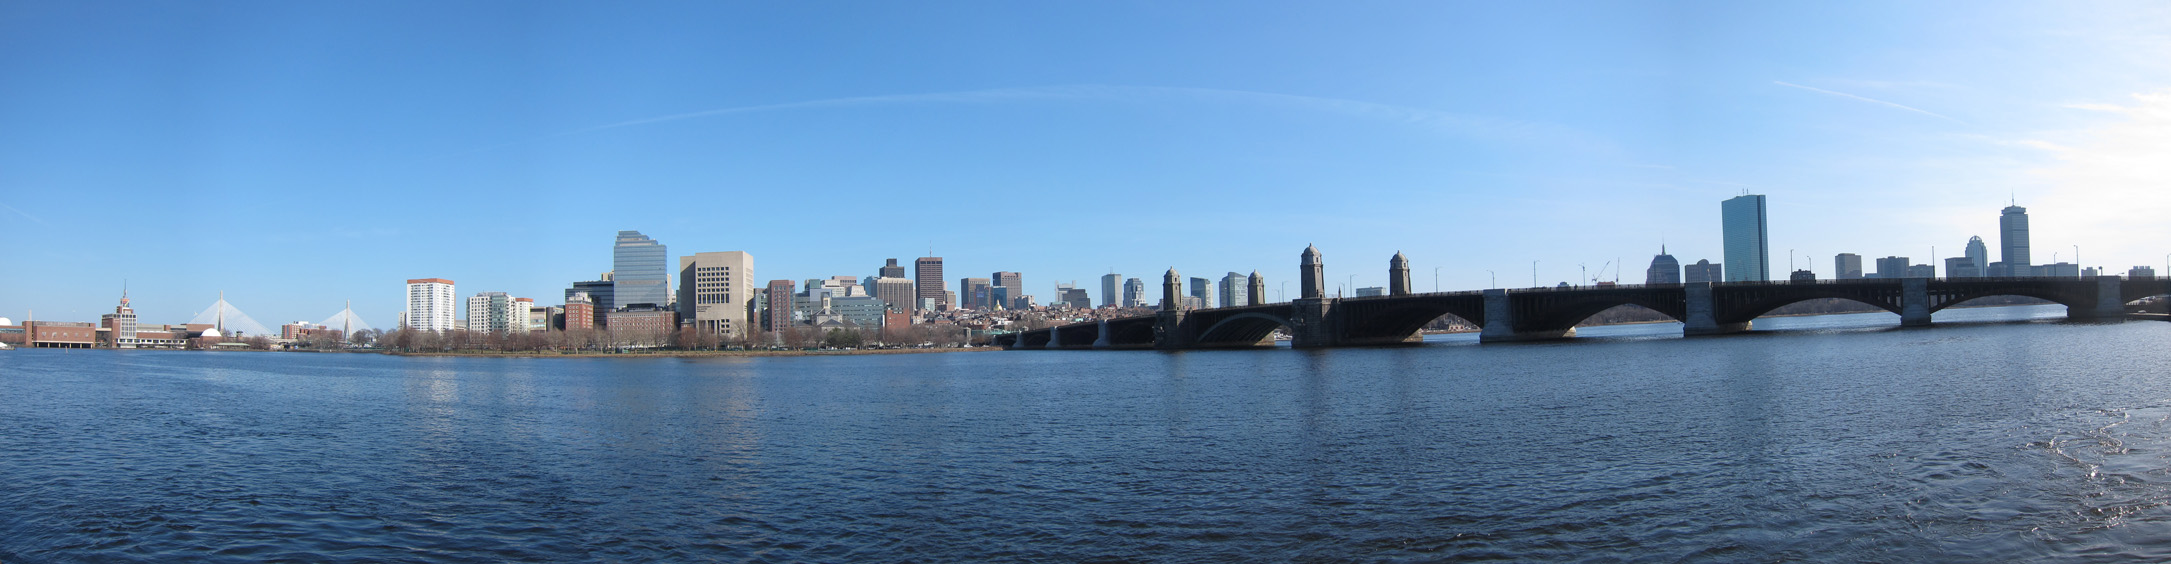 Boston Skyline Panorama (day).jpg